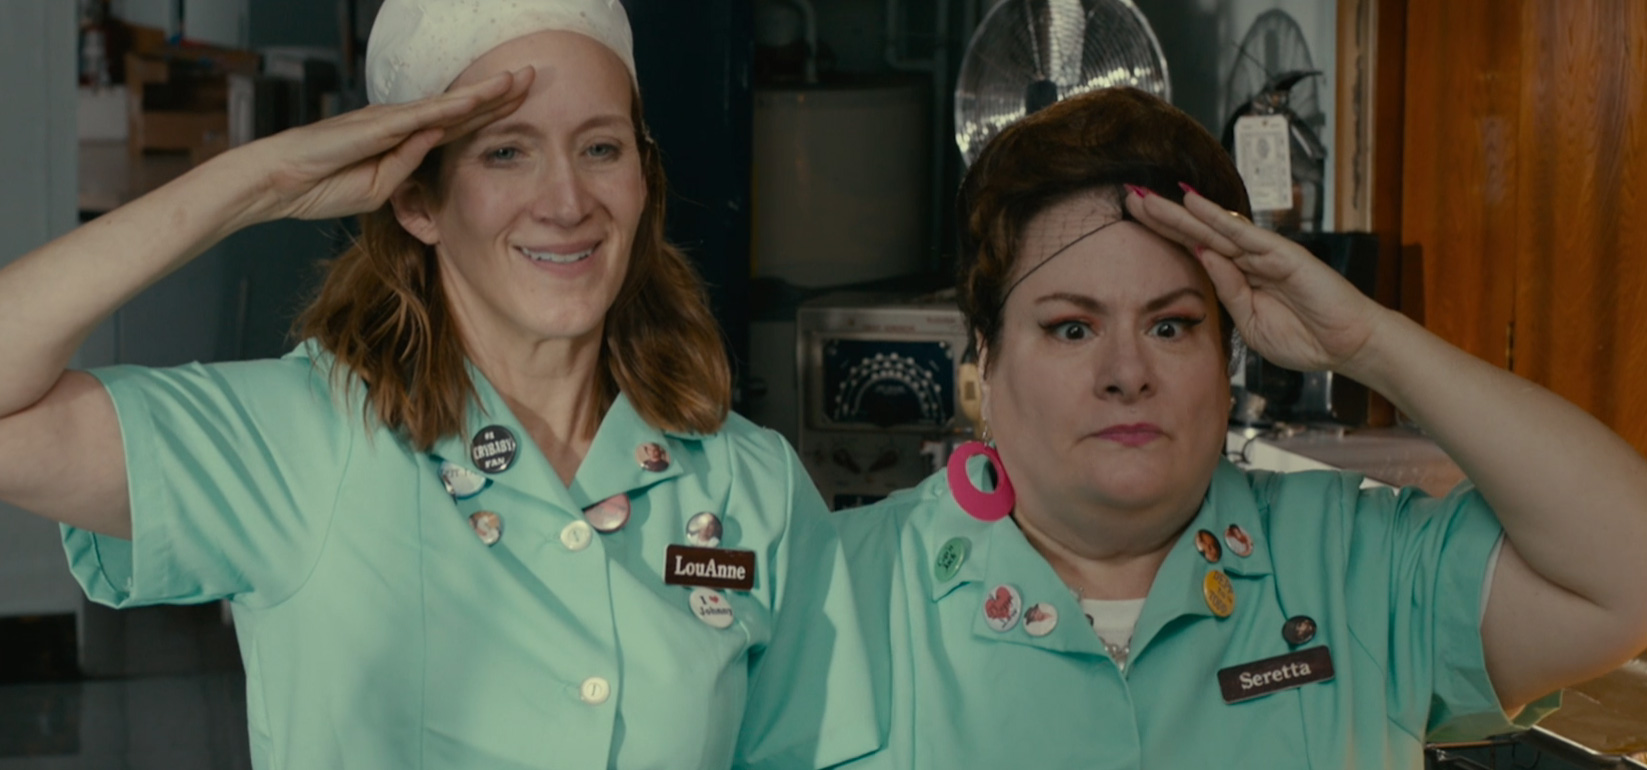 Lunch Ladies, il corto che reinventa Sweeney Todd